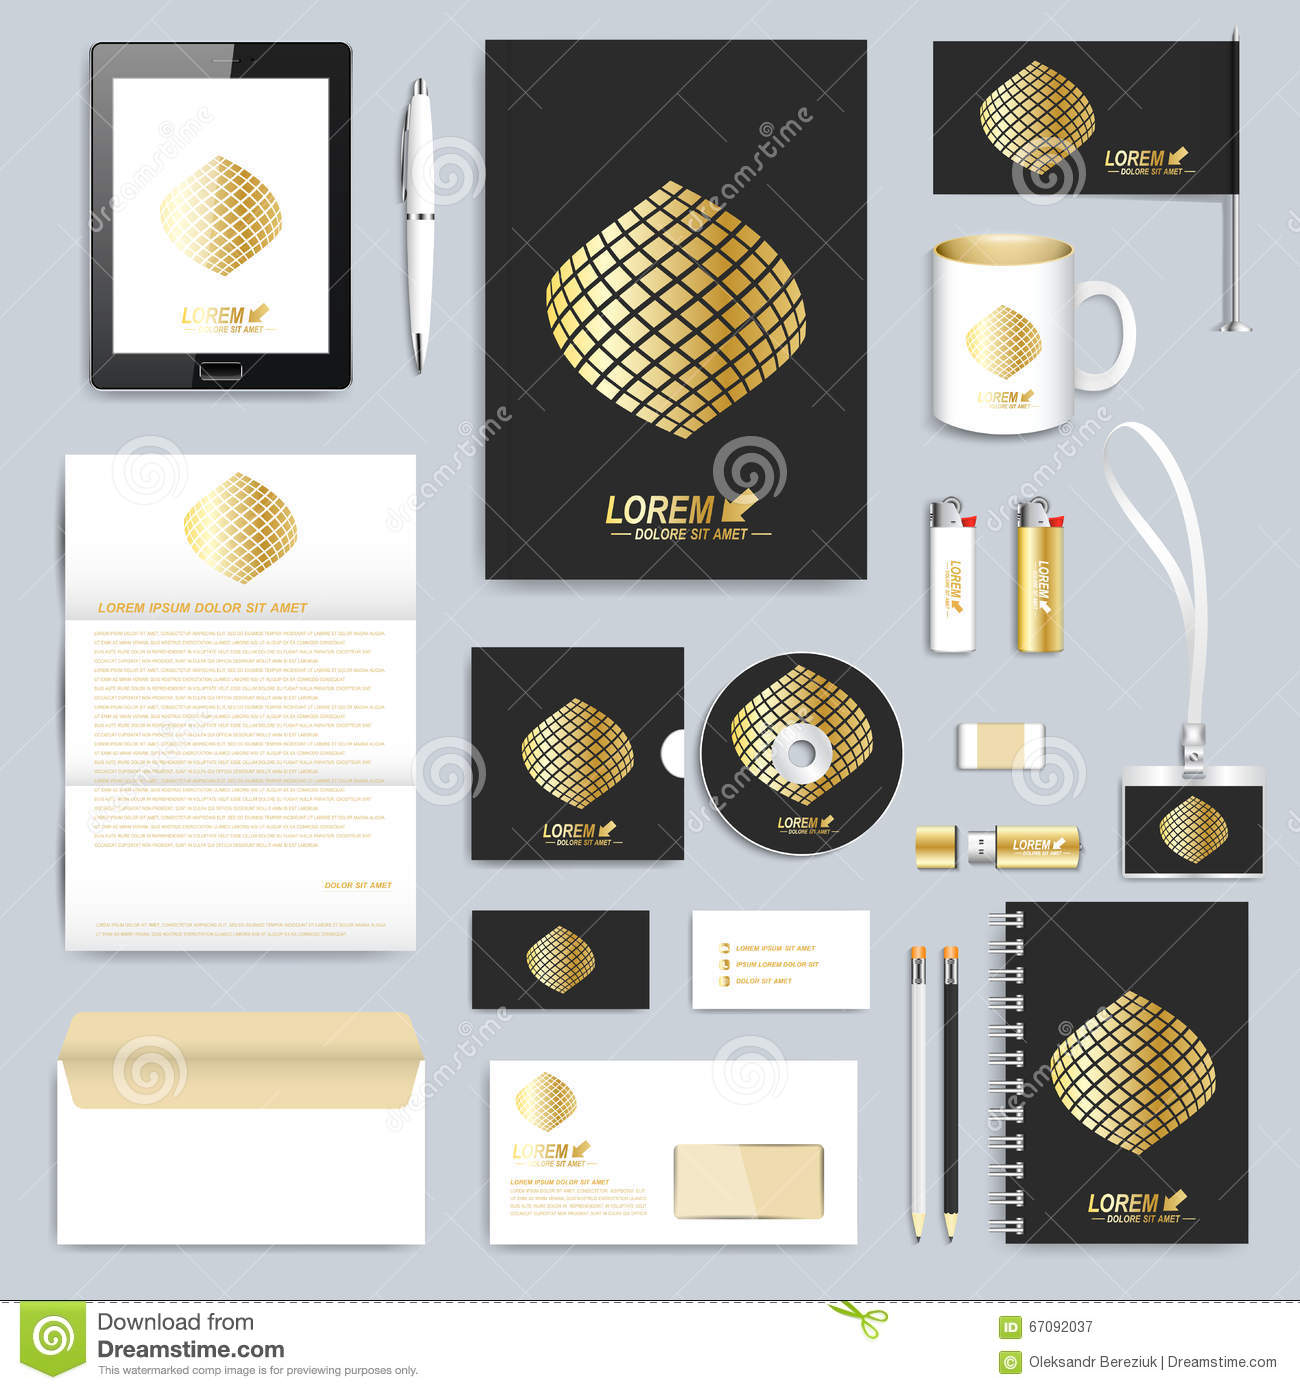 free business stationery templates